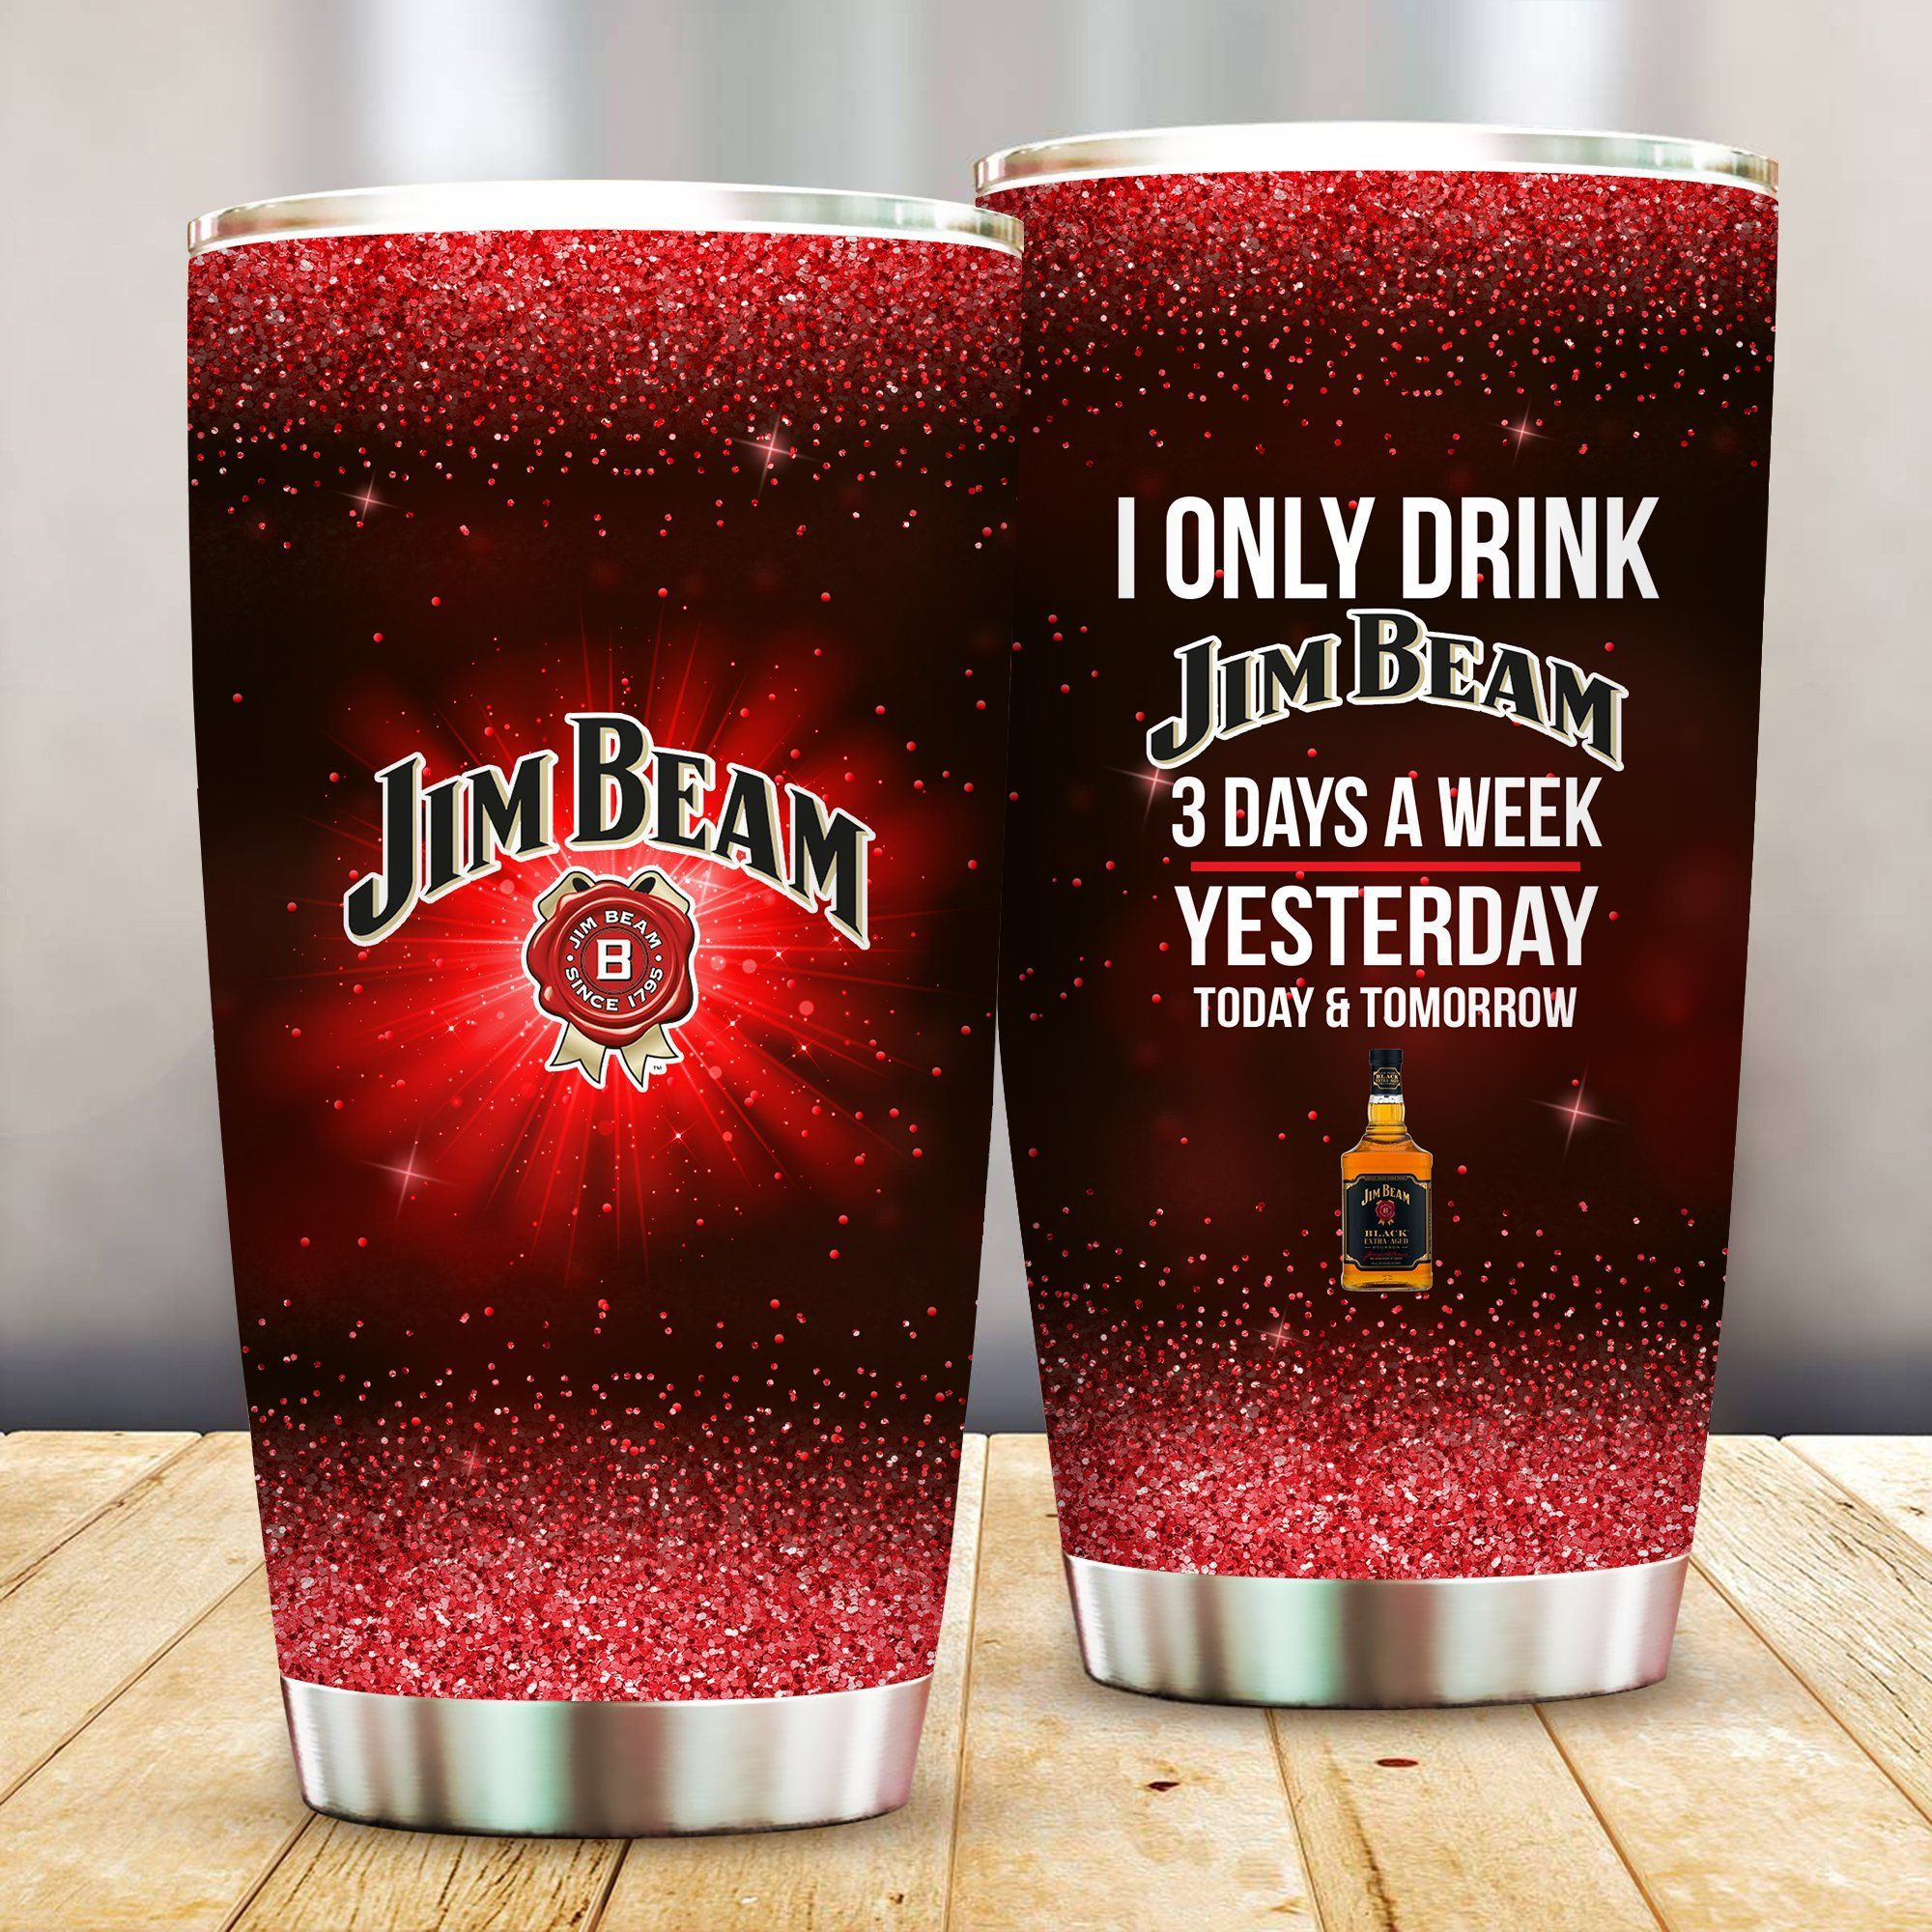 I Only Drink Jim Beam 3 Days A Week Yesterday Today and Tomorrow - Funny Customized Tumbler Cup Unisex Tshirt